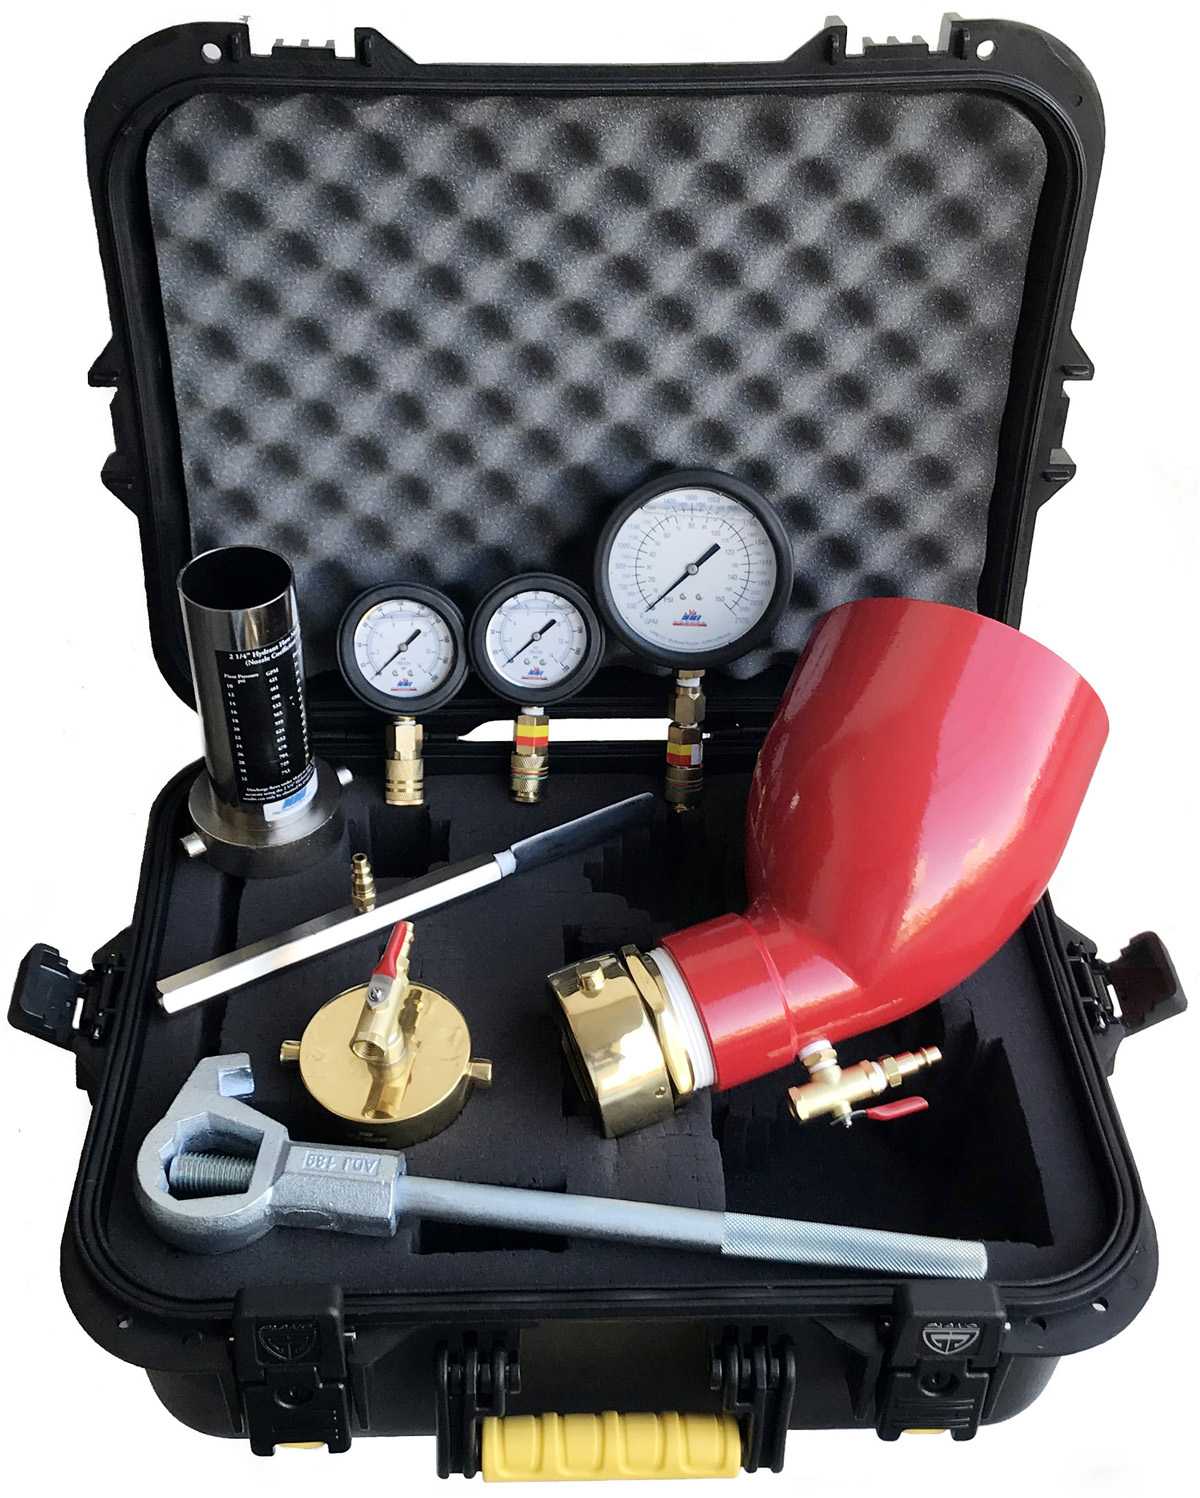 Nni hydrant test kits h fk6 hydrant flow static pressure test kit with remote in a case nvjuhfo Choice Image